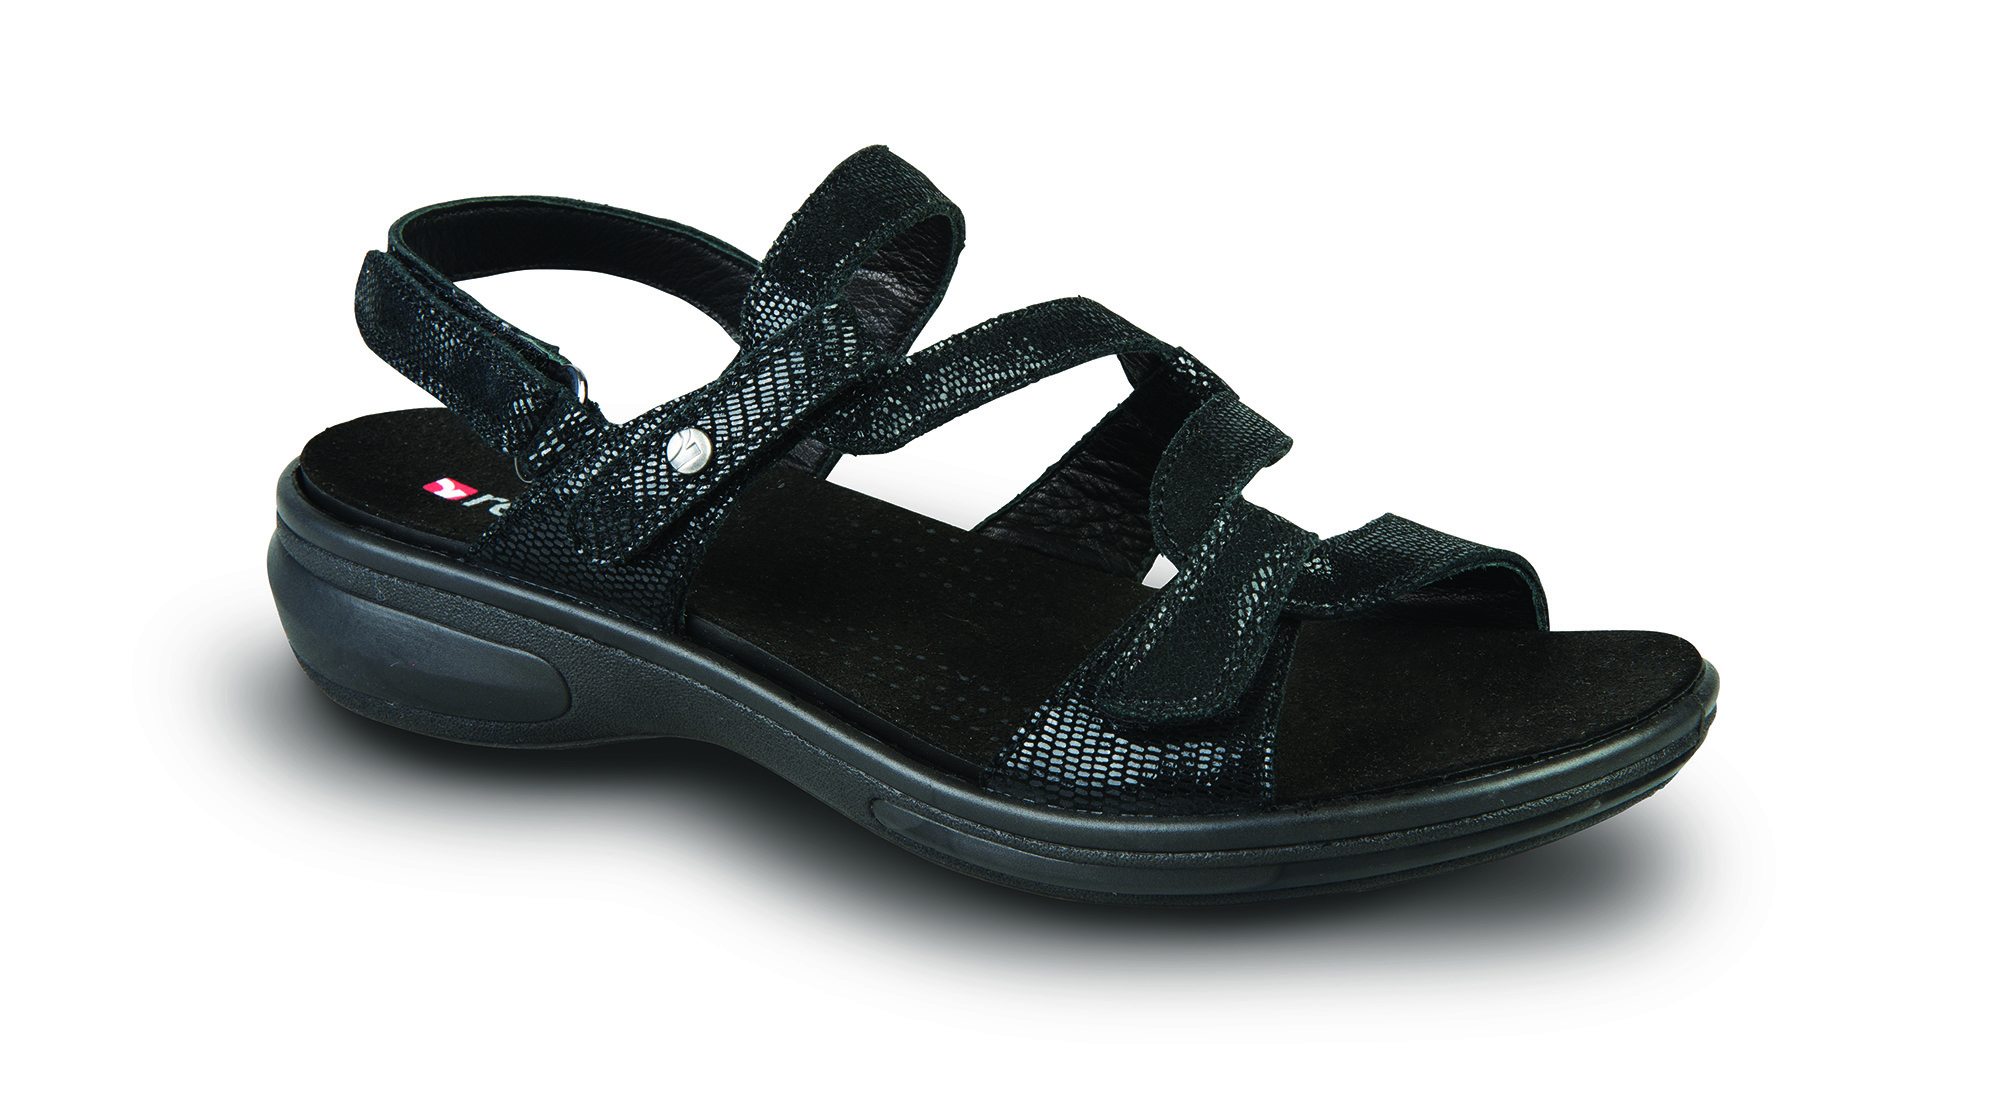 Miami Black Lizard Revere Sandal Podiatry On Plenty